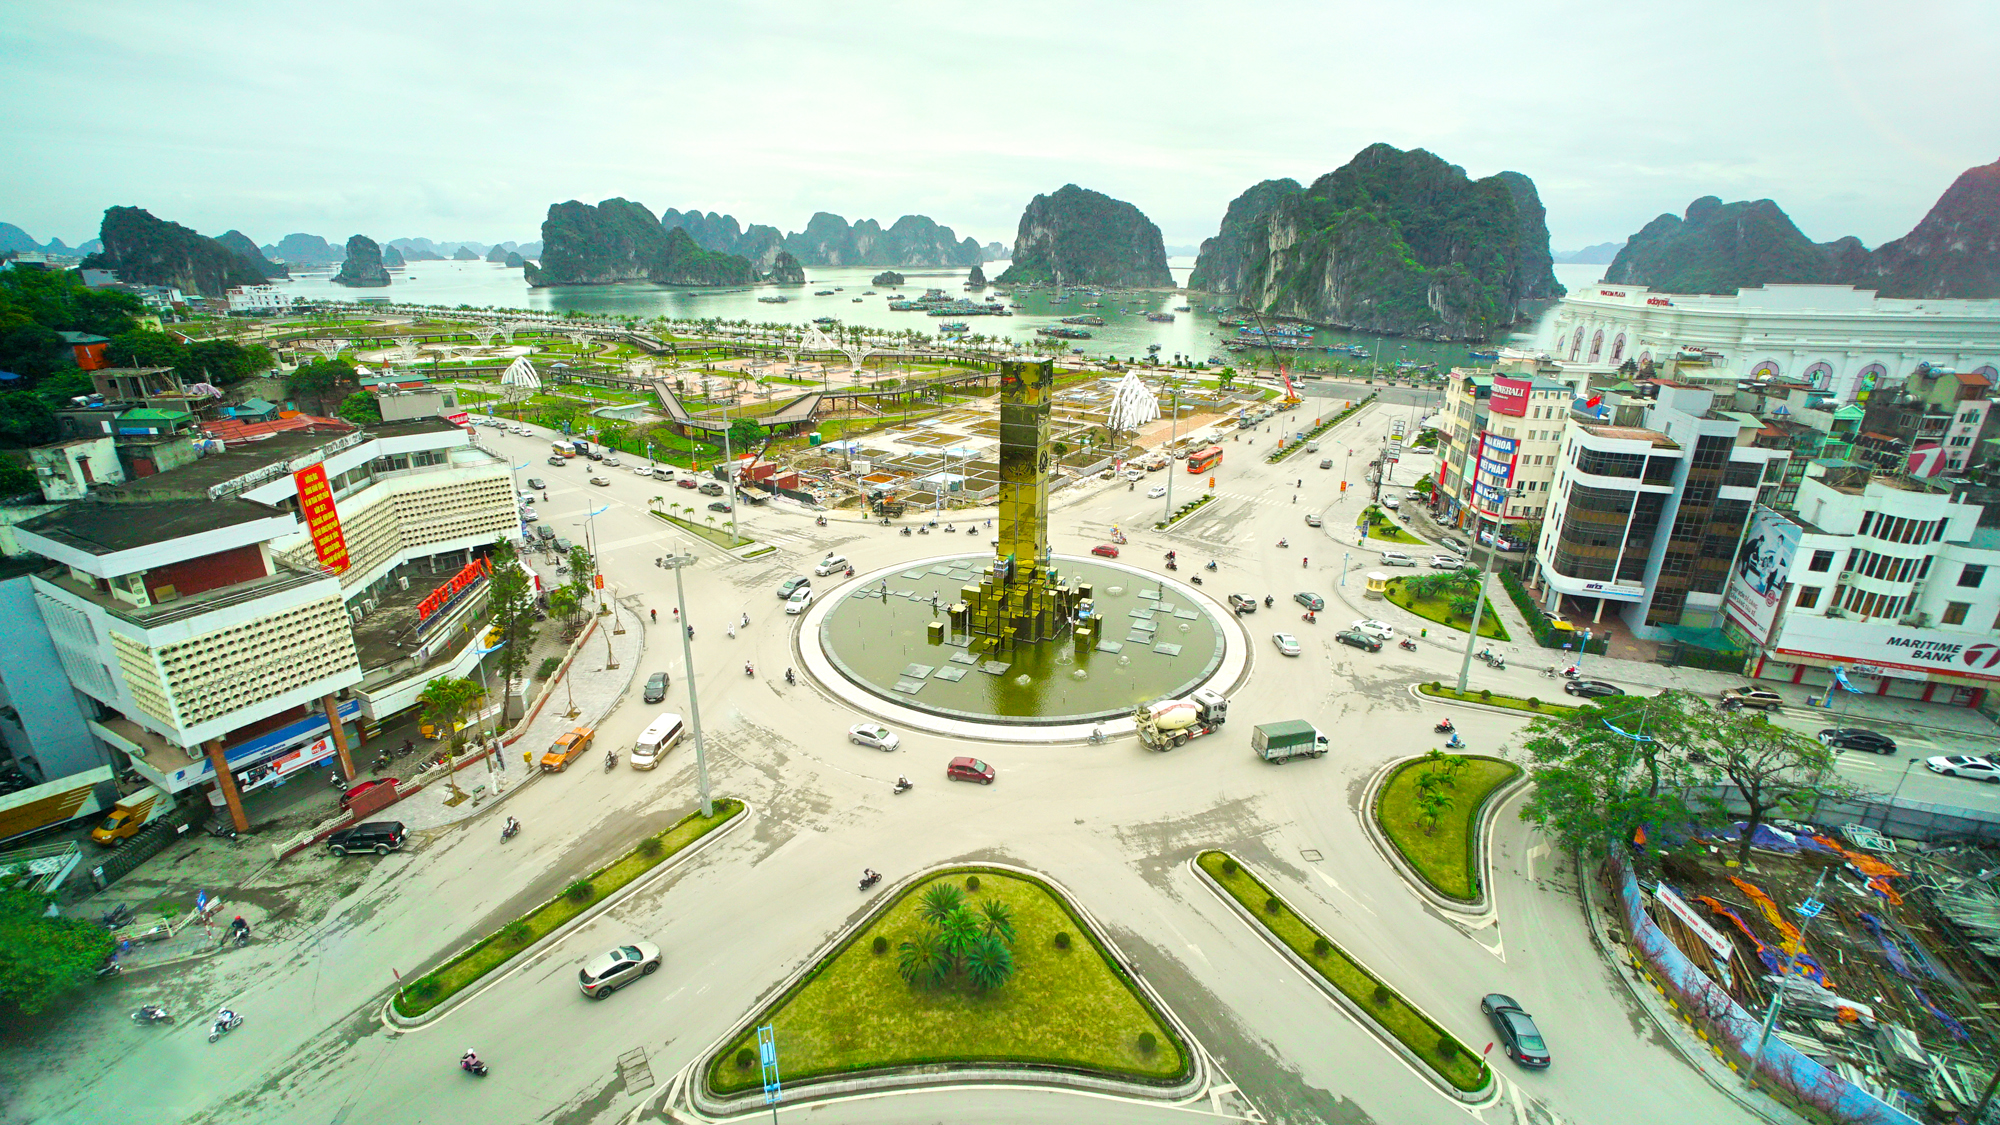 Quang Ninh to complete merger of Ha Long city and Hoanh Bo district in 2019